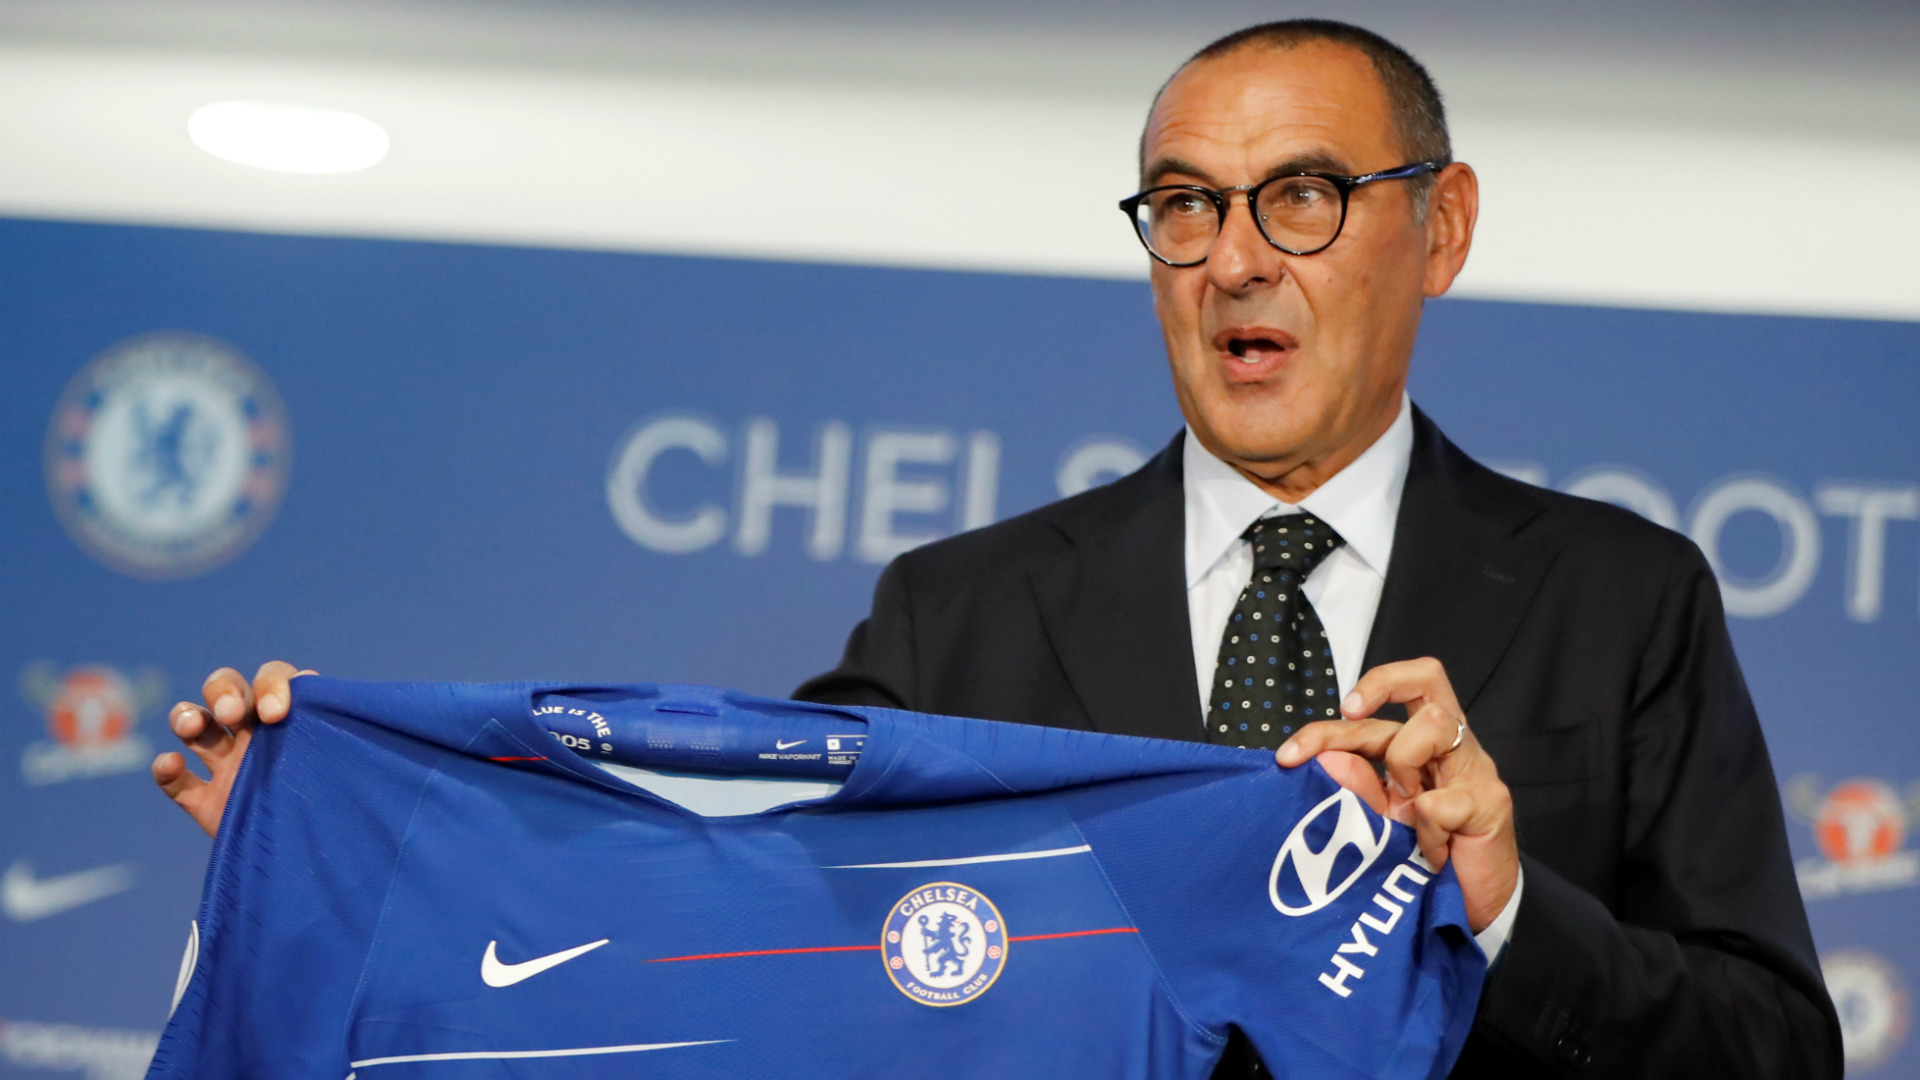 Former Napoli manager Sarri replaces Conte at Chelsea